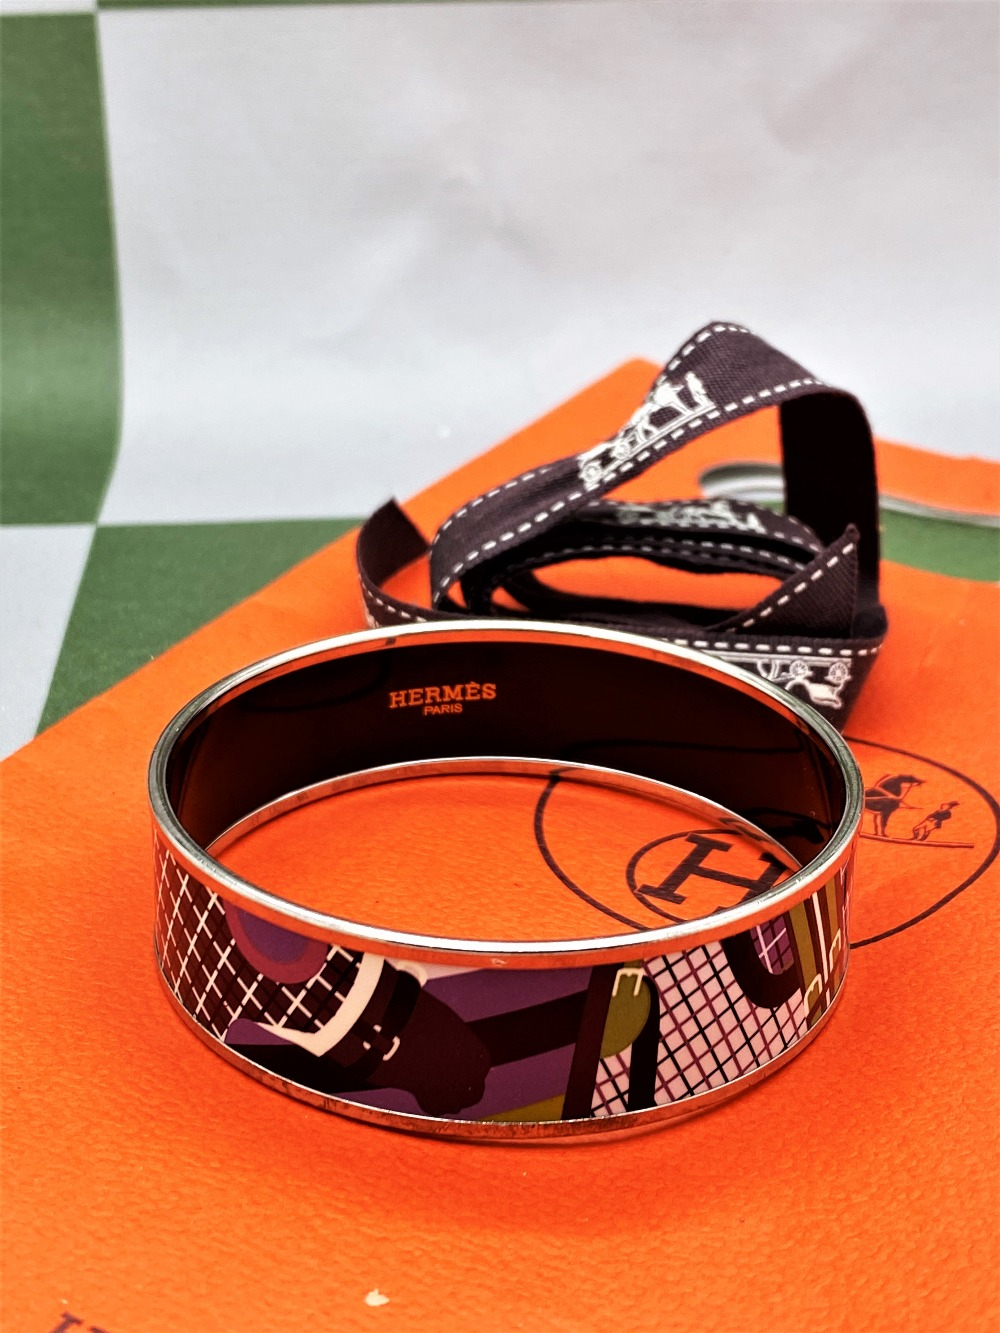 """Hermes """"Horses"""" Wide Late Edition Monogram & Silver Bangle - Image 2 of 7"""